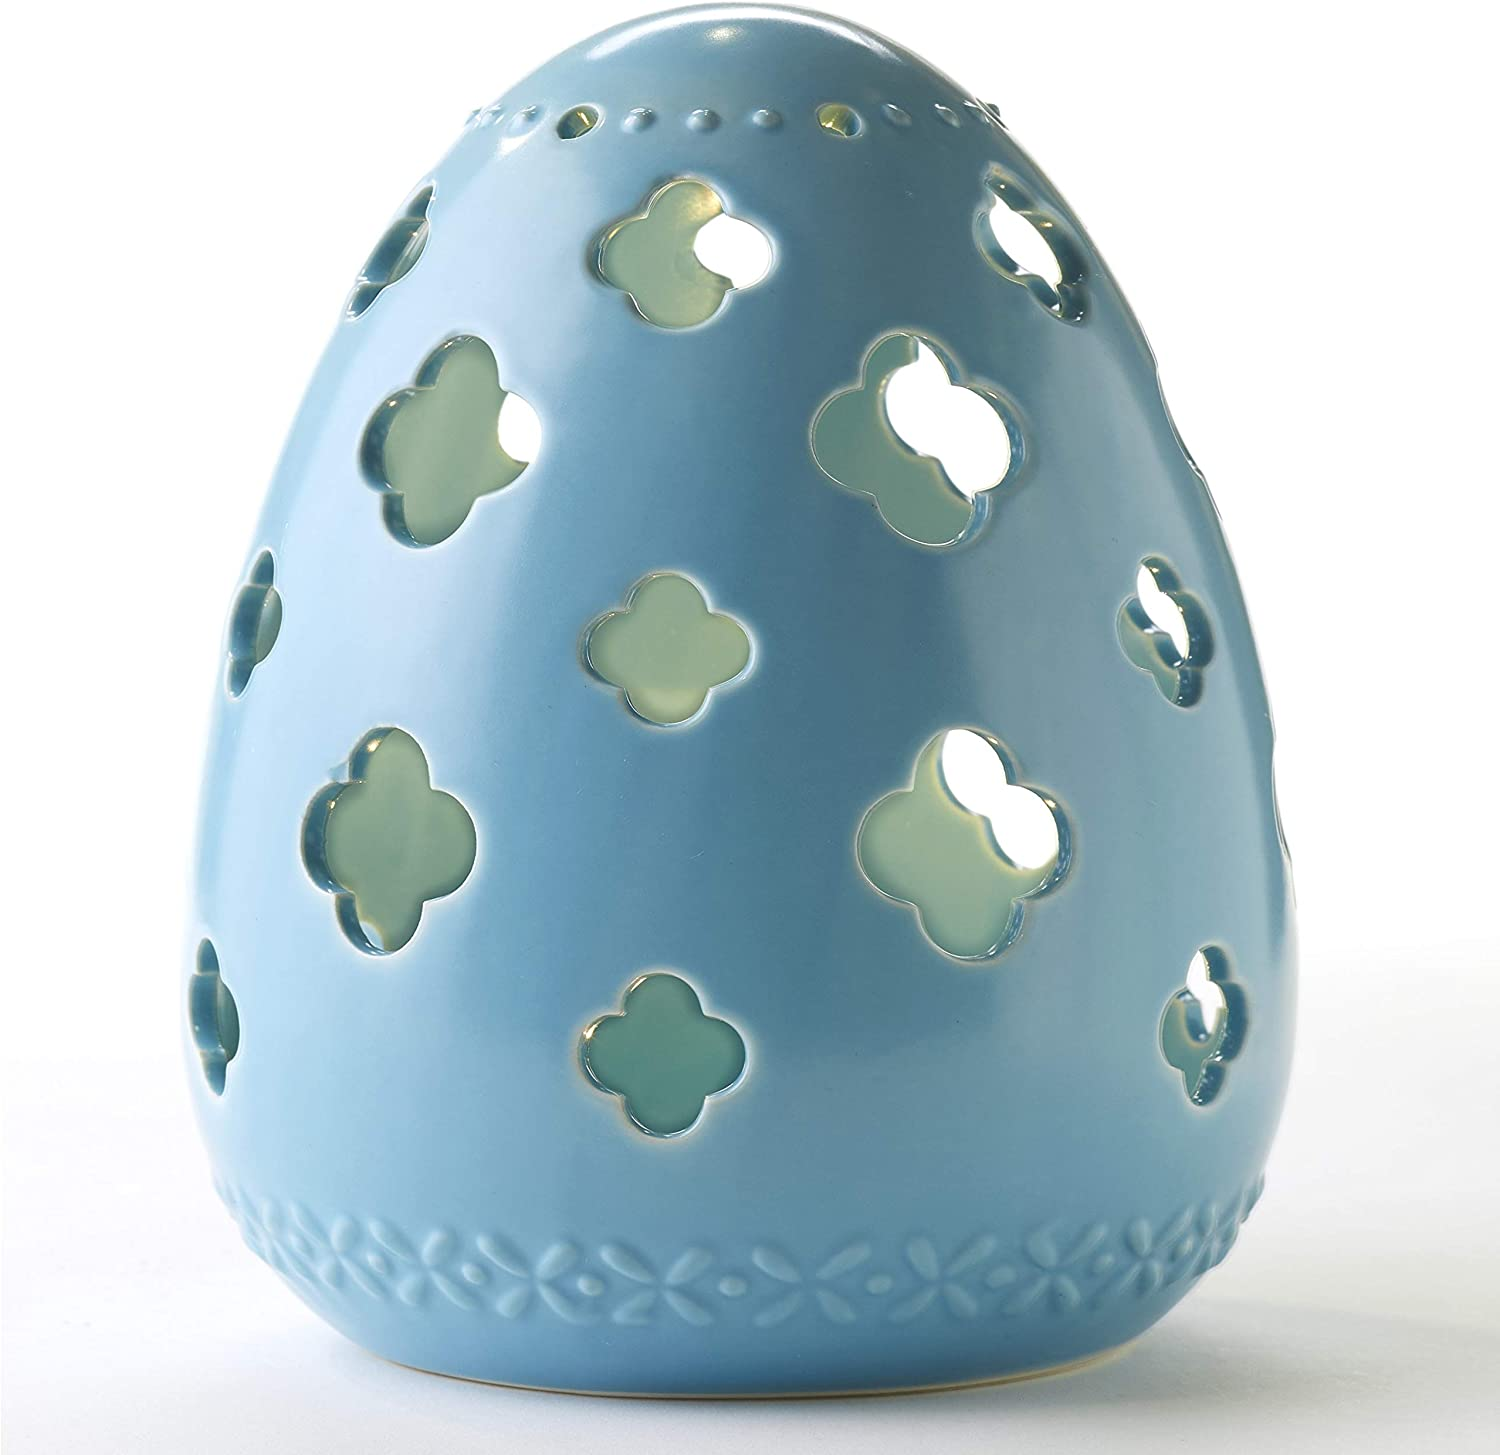 Amazon Com The Lakeside Collection Large Blue Lighted Ceramic Easter Egg For Decorating Light Up Indoor Accent Home Kitchen